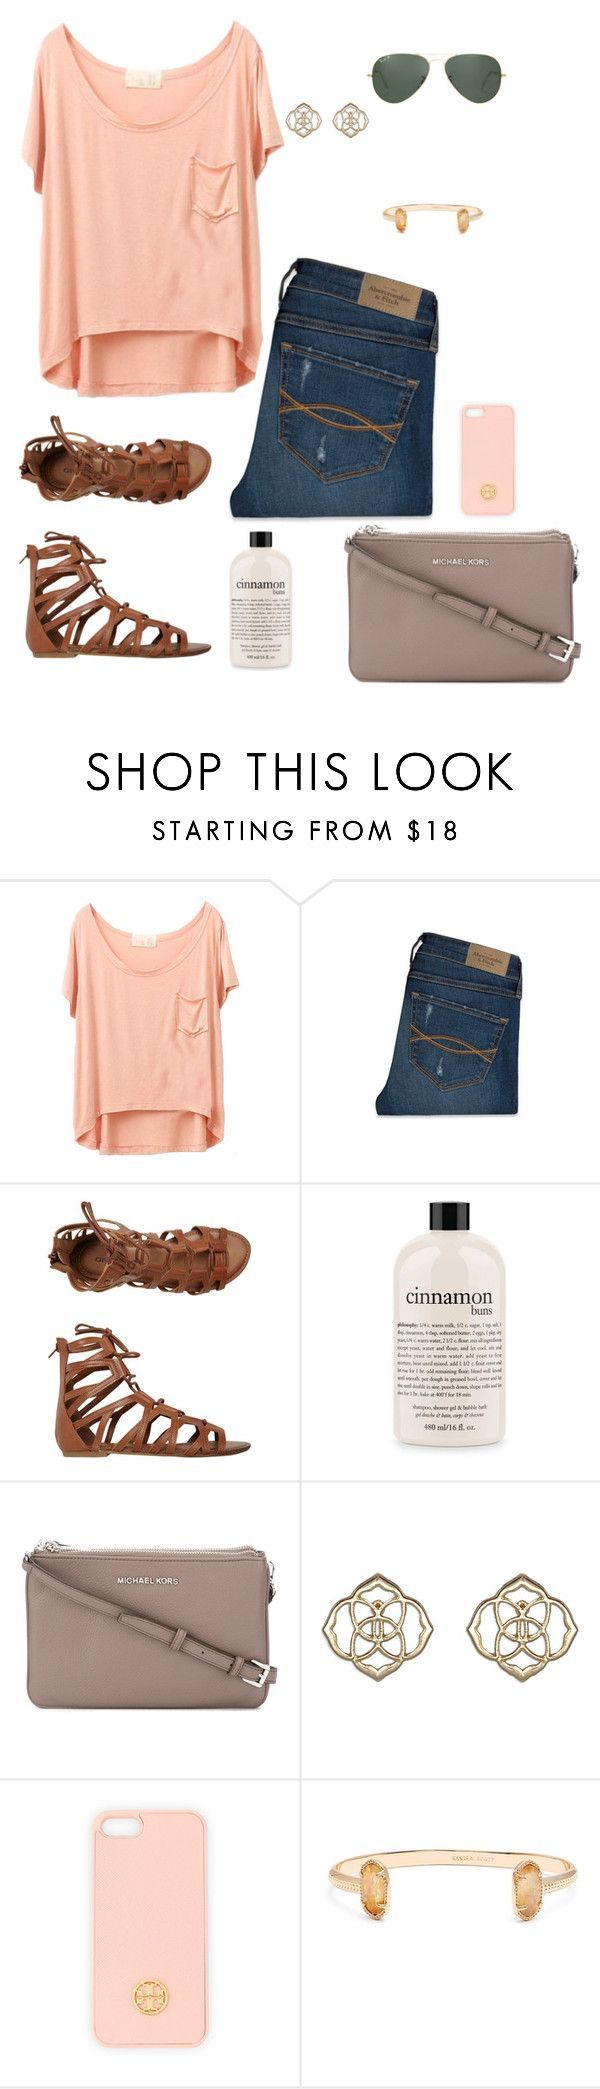 Untitled #59 by annakhowton  liked on Polyvore featuring Abercrombie  Fitch, O'Neill, philosophy, MICHAEL Michael Kors, Kendra Scott, Tory Burch and Ray-Ban